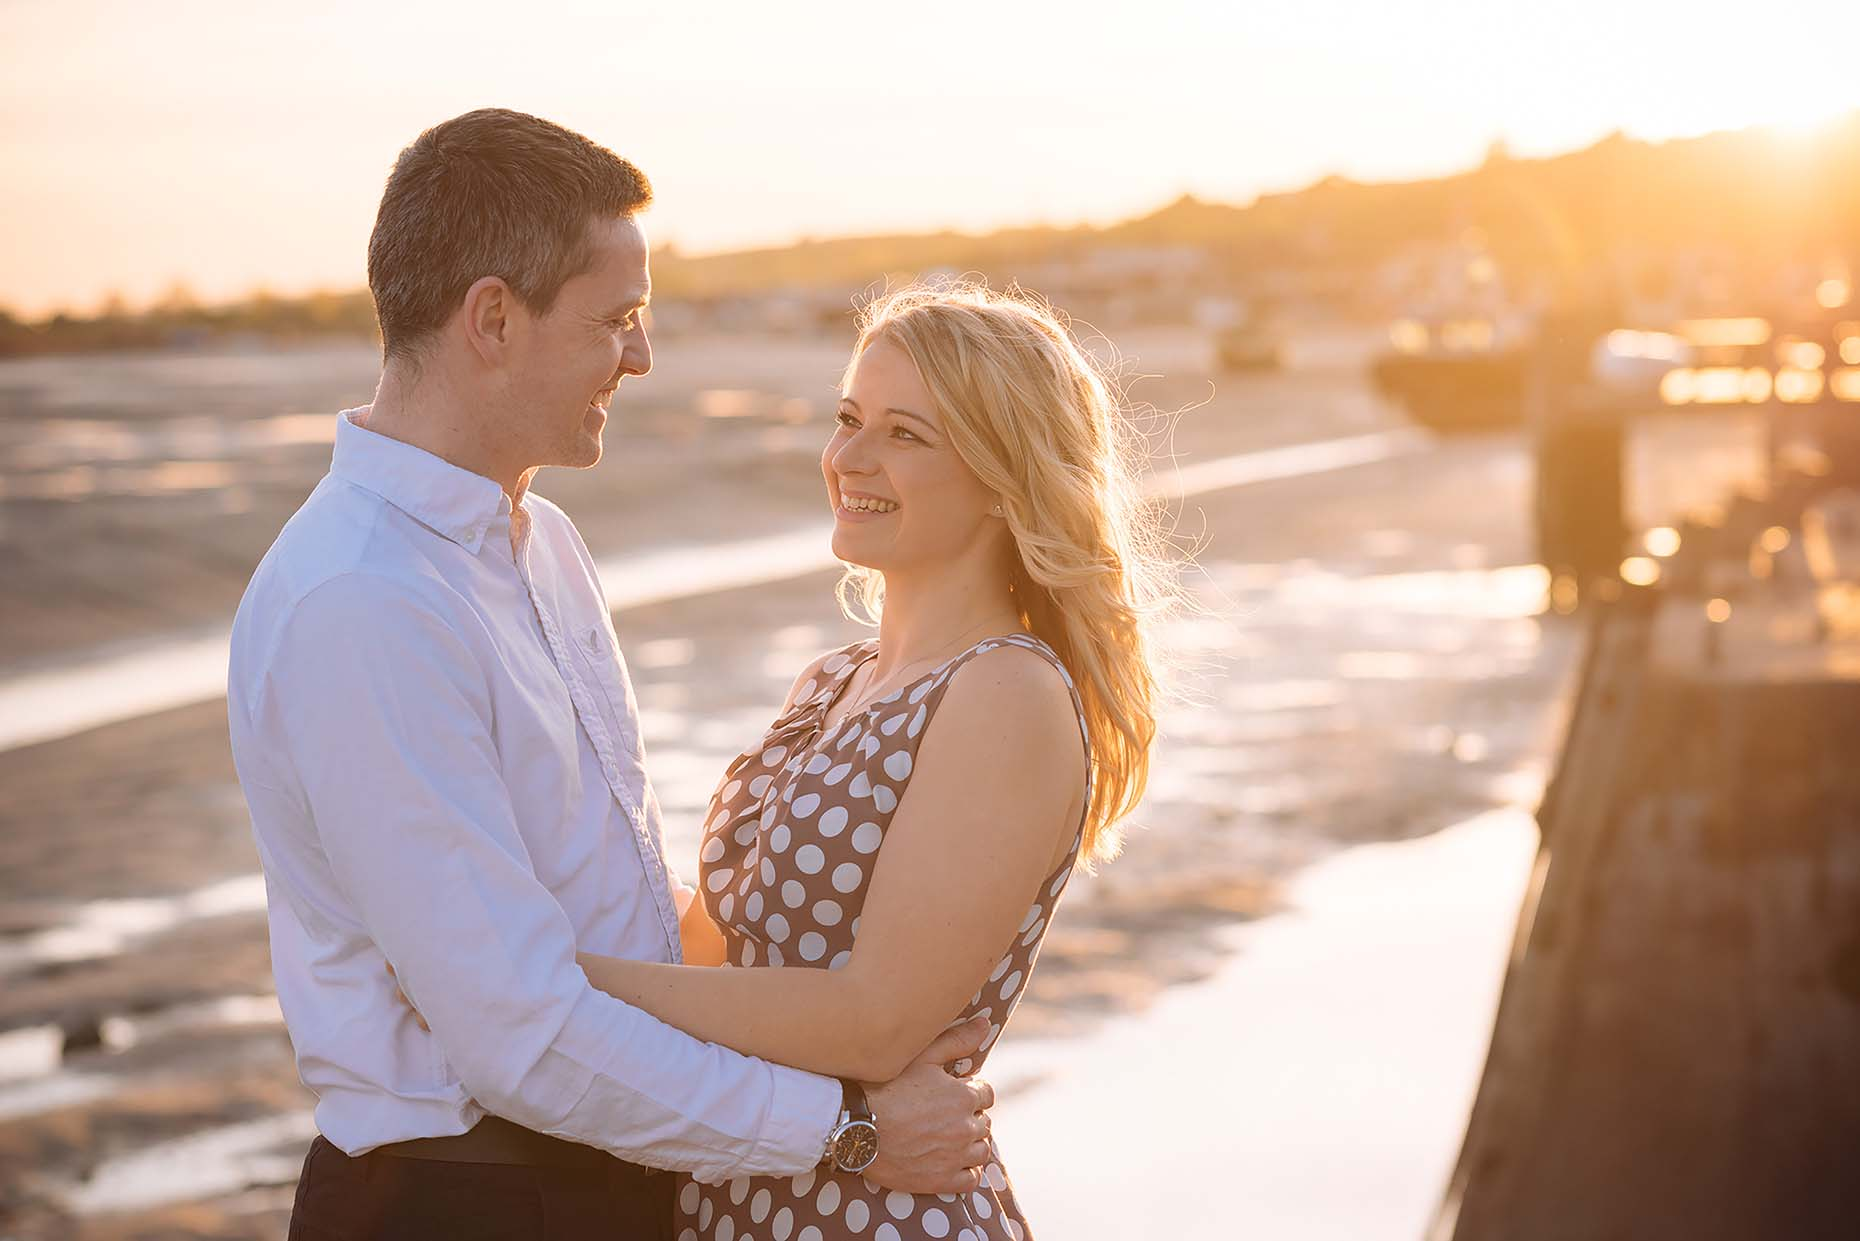 simon-southend-on-sea-engagement-shoot-summer-romance-07